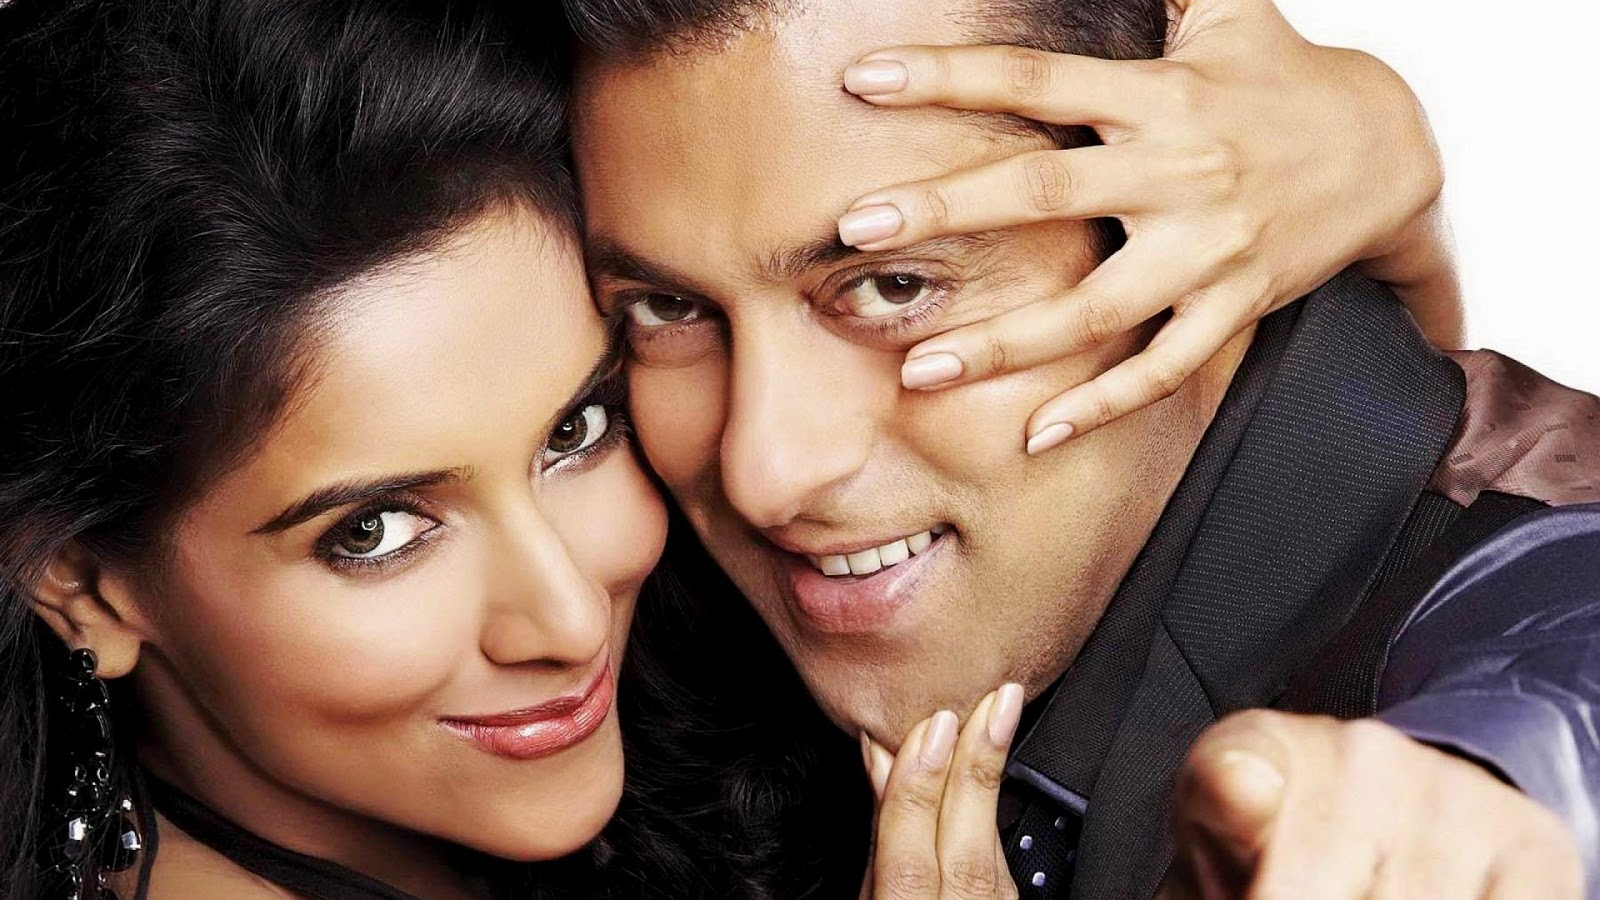 Salman Khan in Ready movie Wallpaper with Asin